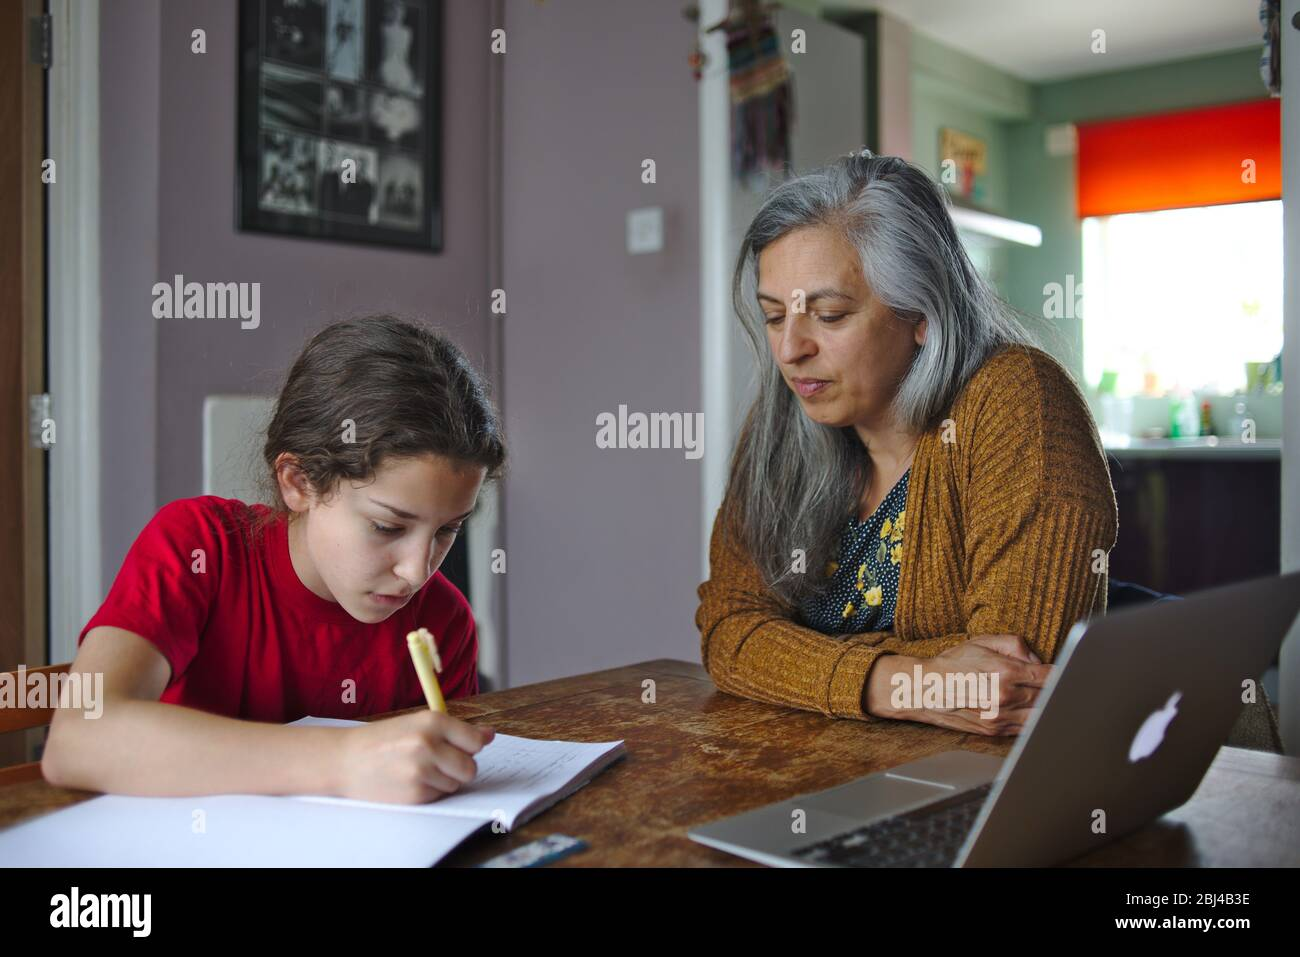 Parent helping child with school work at home during coronavirus lockdown. April 2020 UK Stock Photo